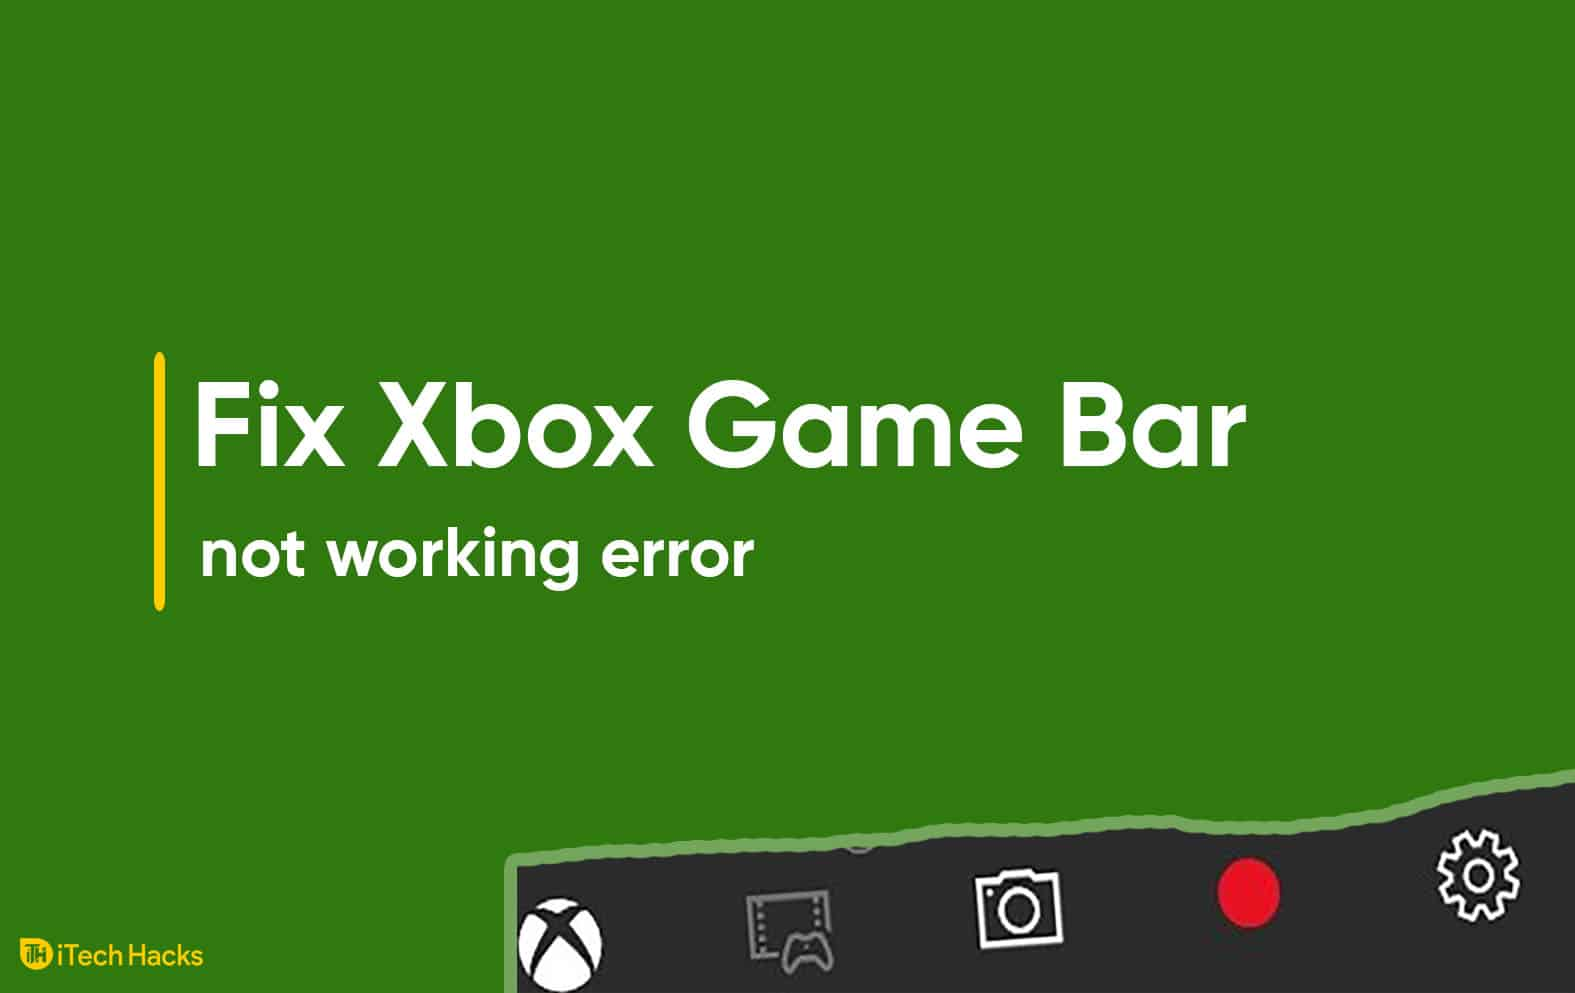 How To Fix Xbox Game Bar Not Working Error